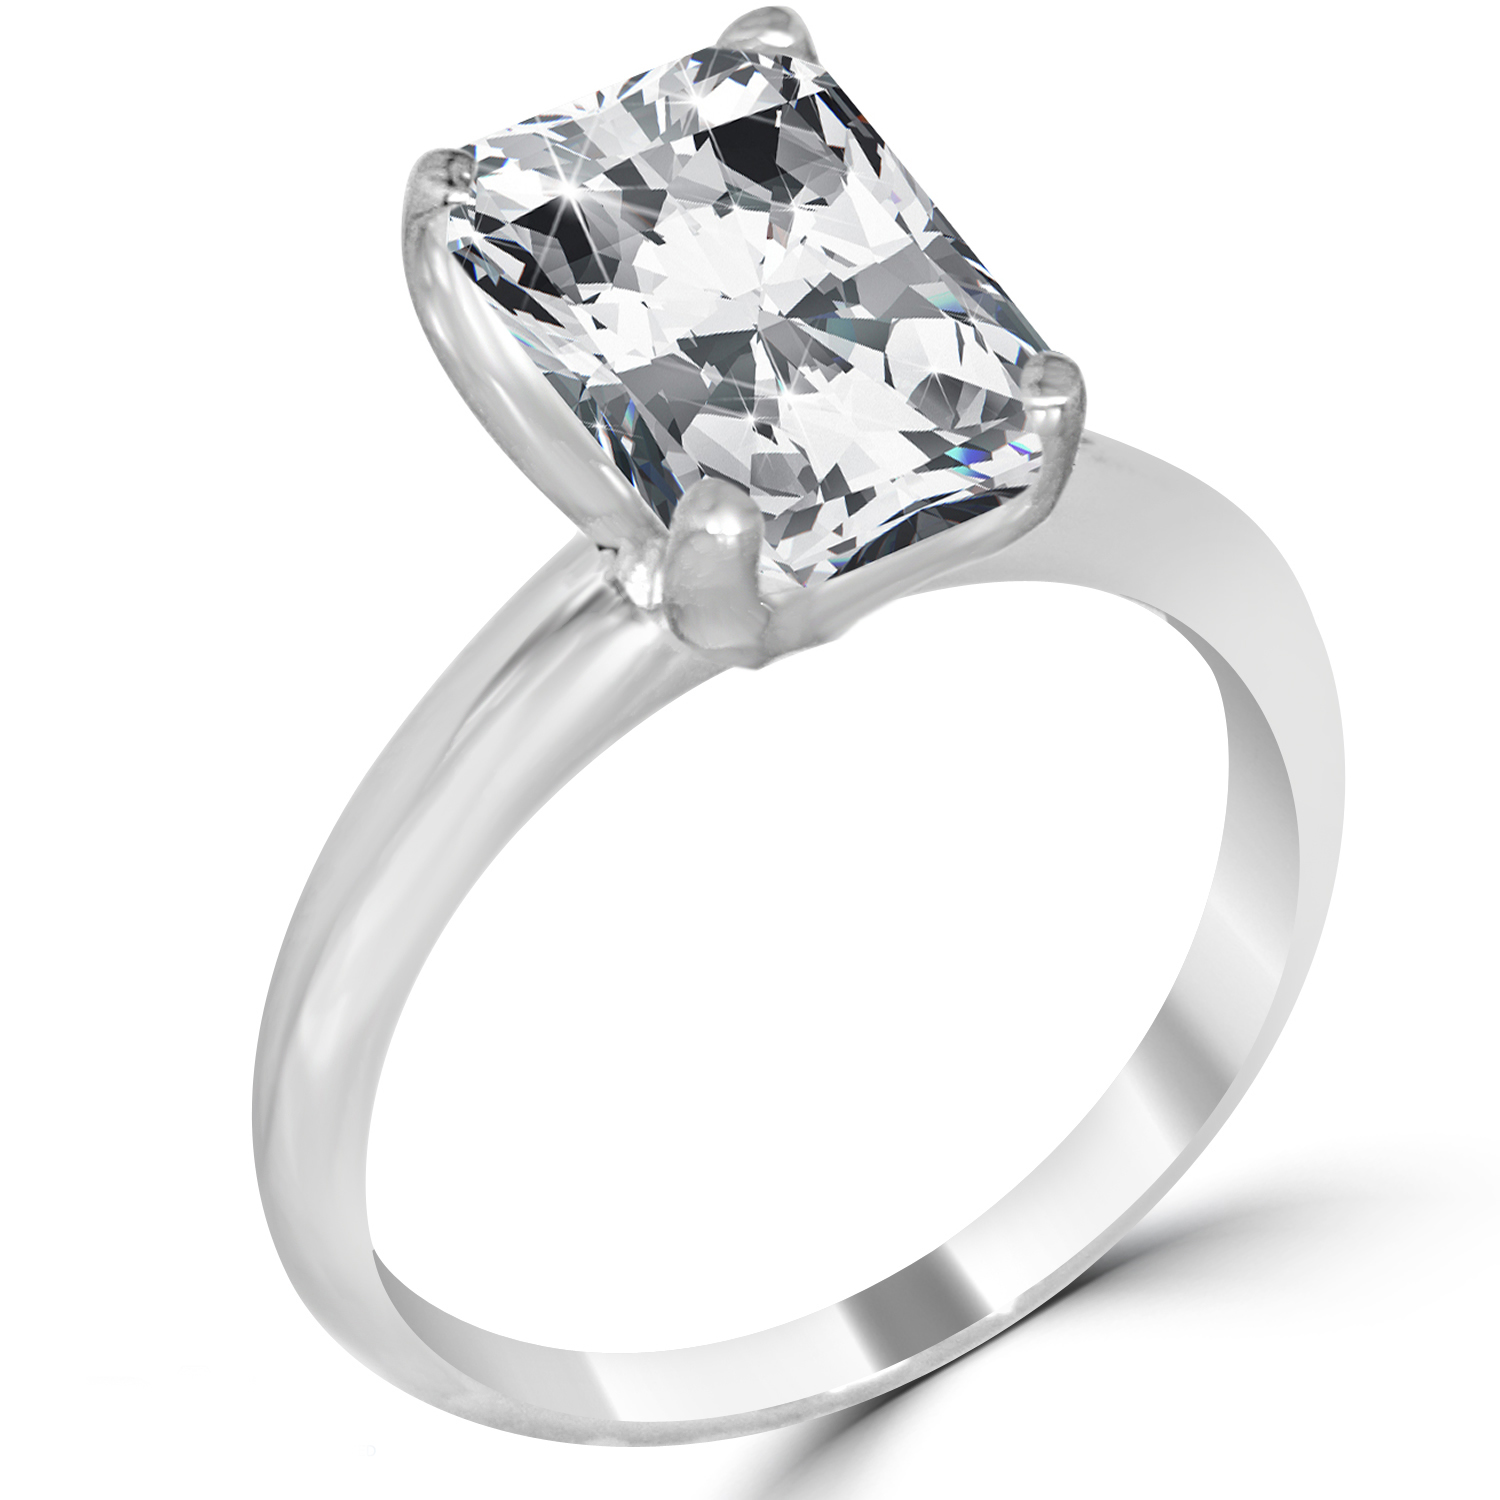 3.31 Ct Radiant Cut Diamond Engagement Ring SI1/D 14K